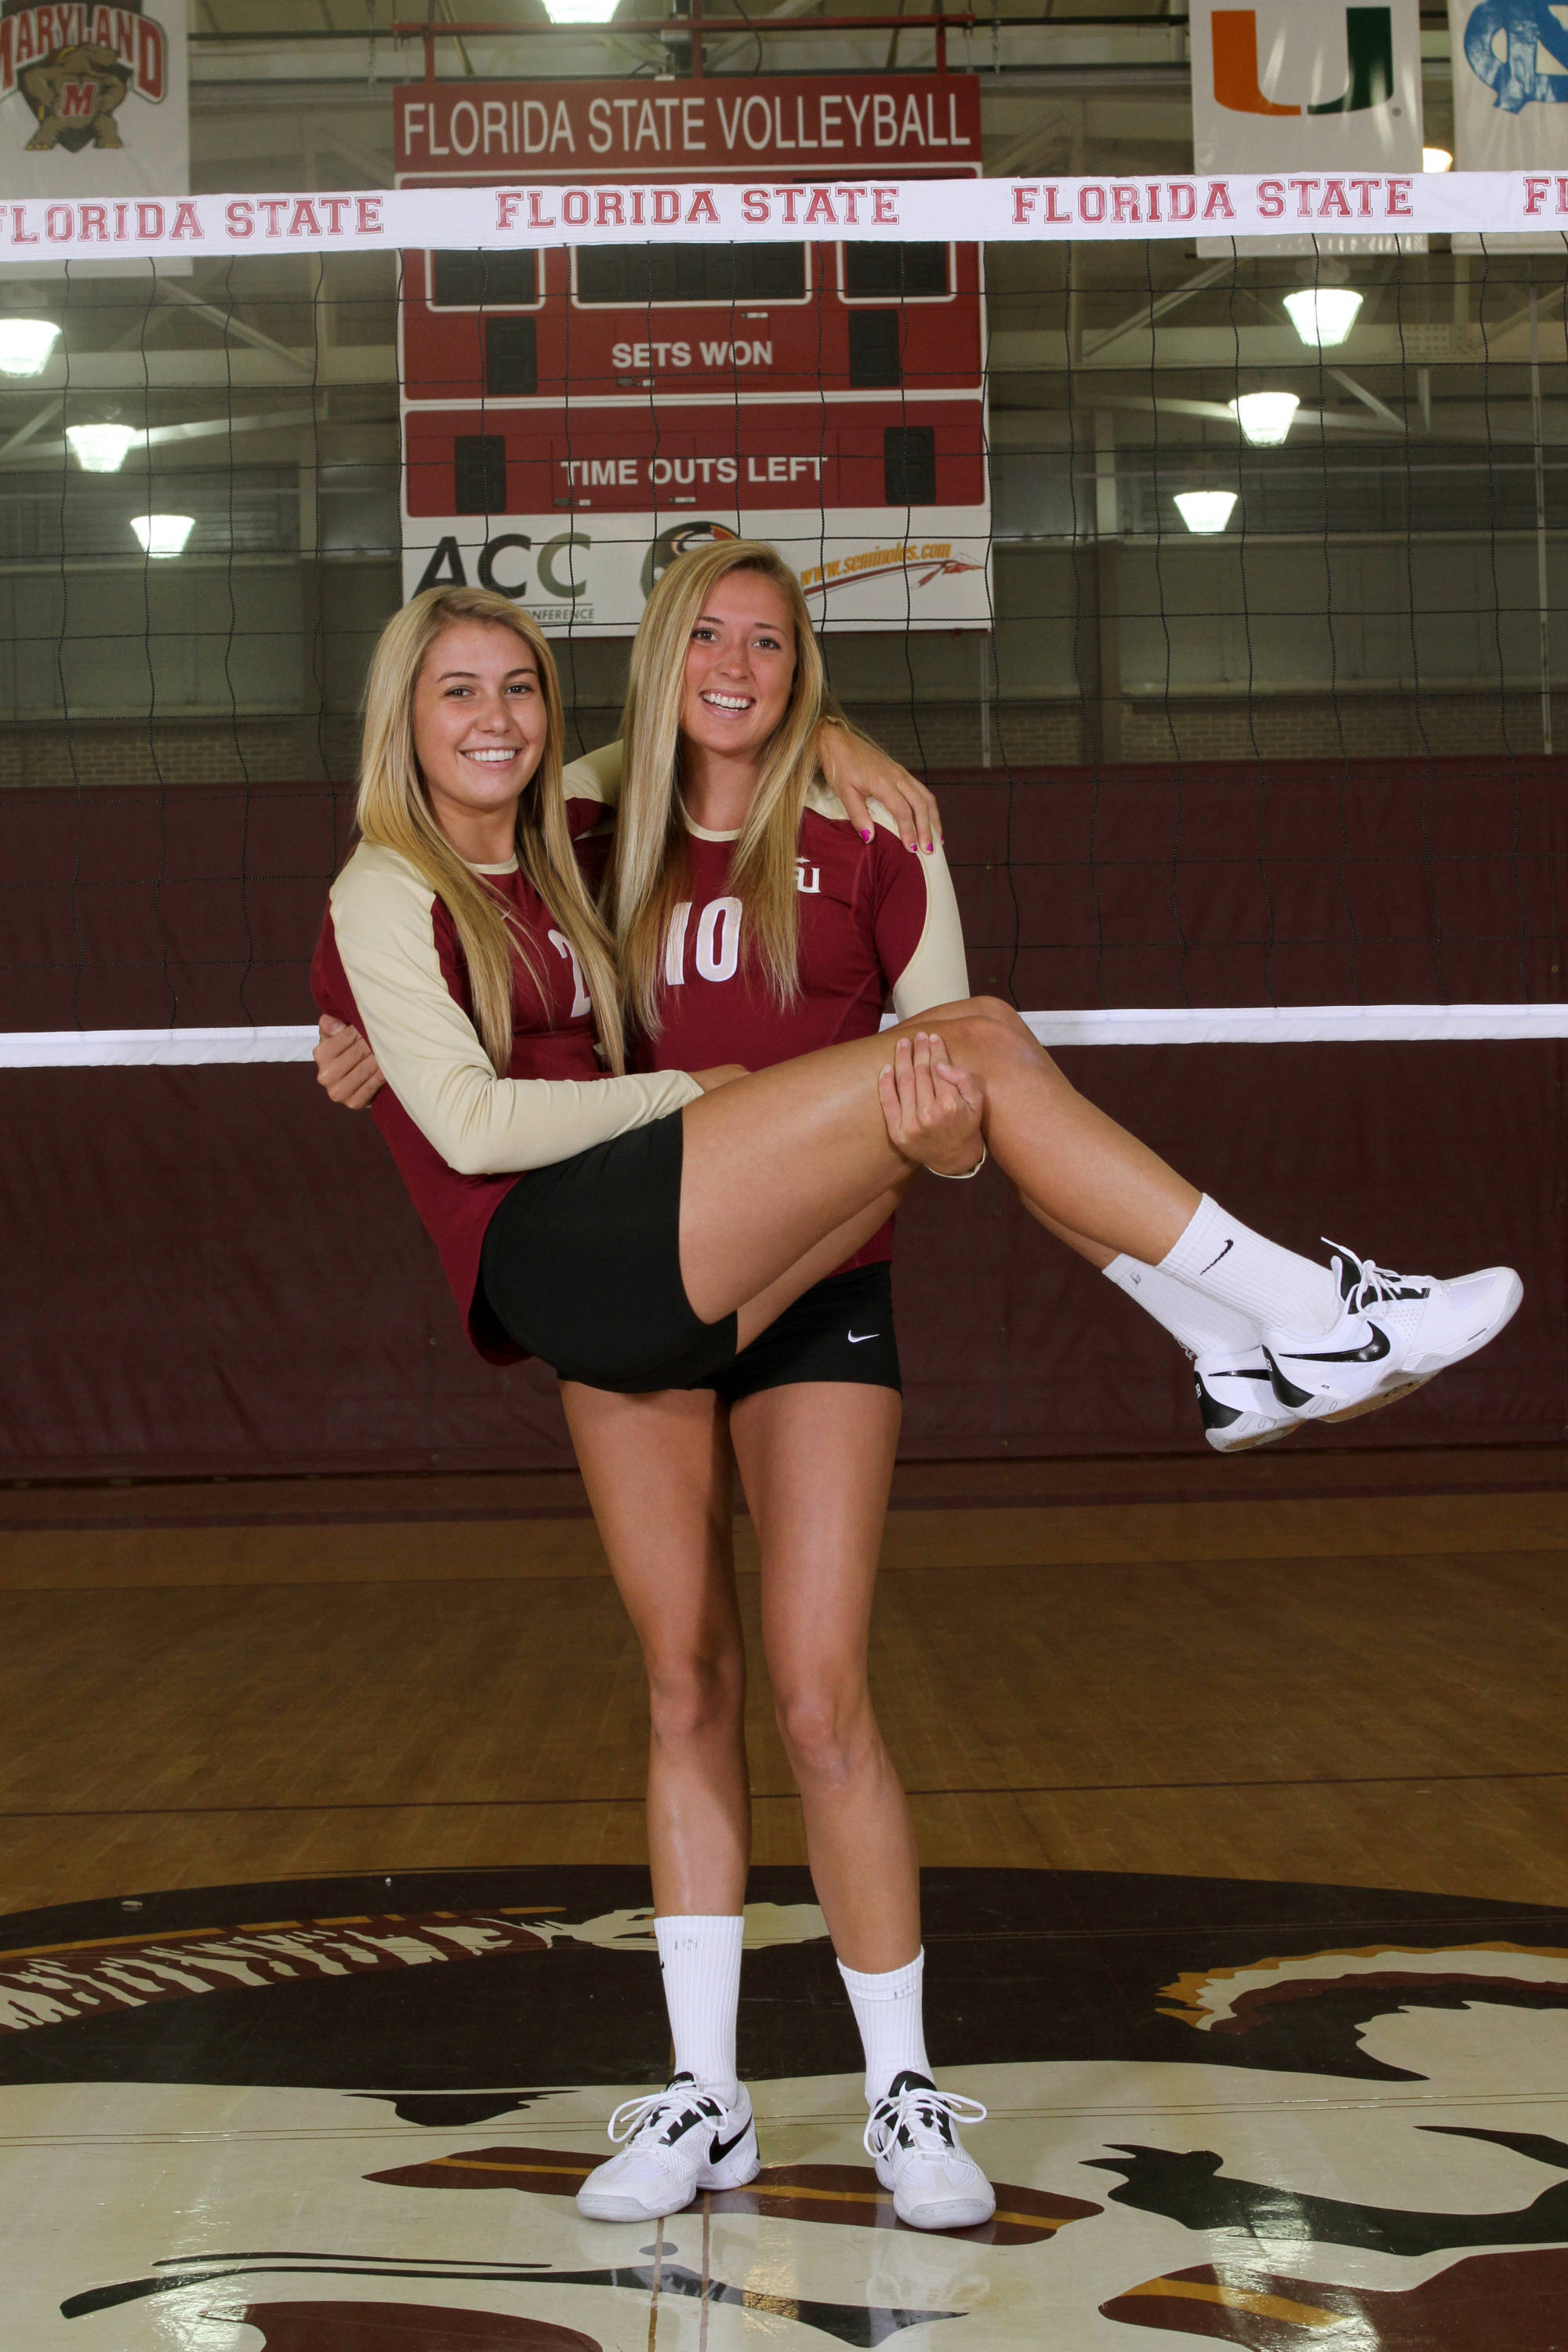 Redshirt freshman Katie Mosher and true freshman Sarah Wickstrom seem to get along pretty well!